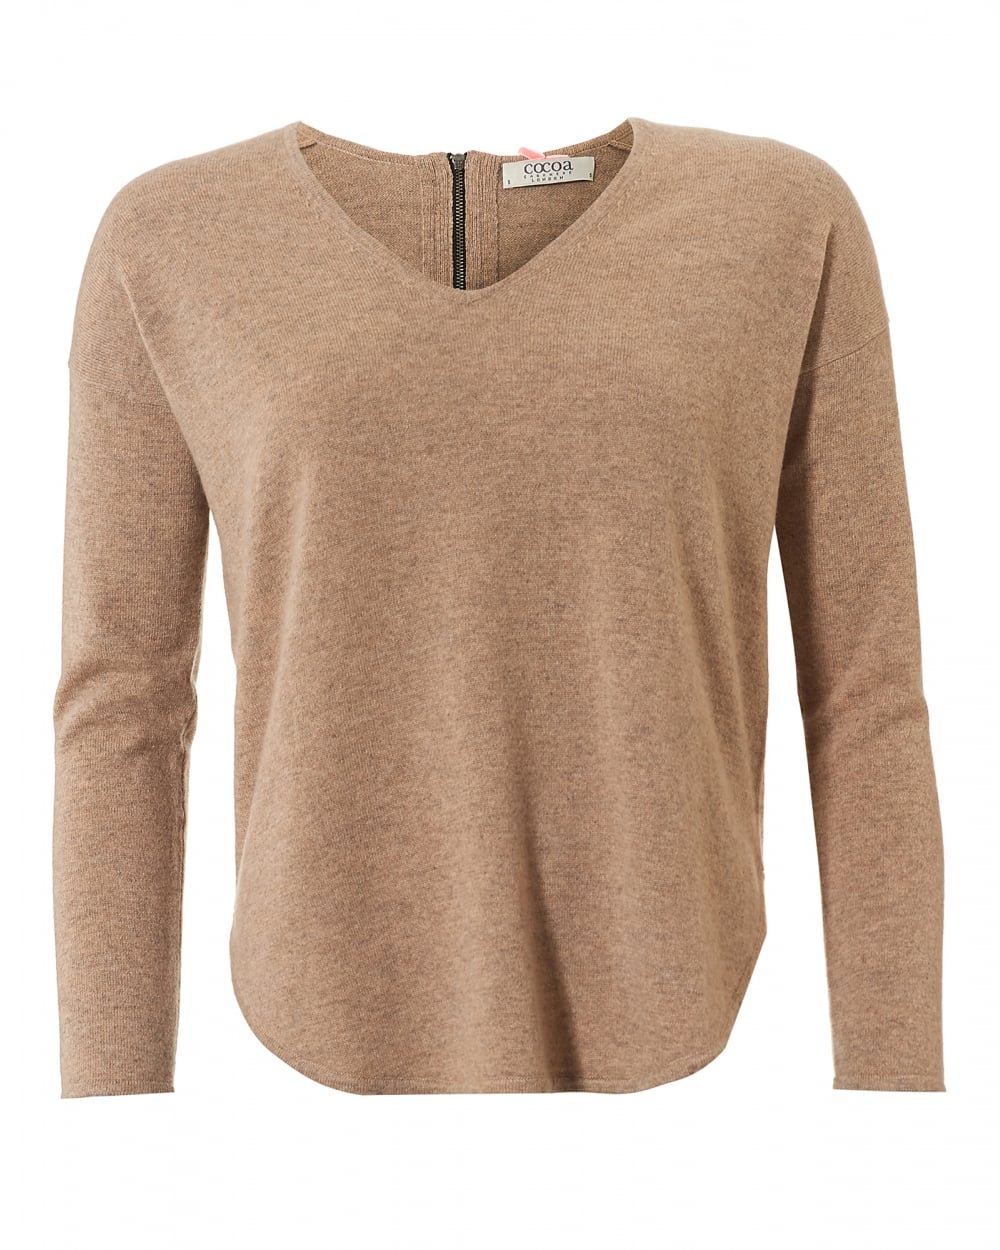 Cocoa Cashmere Womens The Cherie Jumper, V Neck Camel Sweater